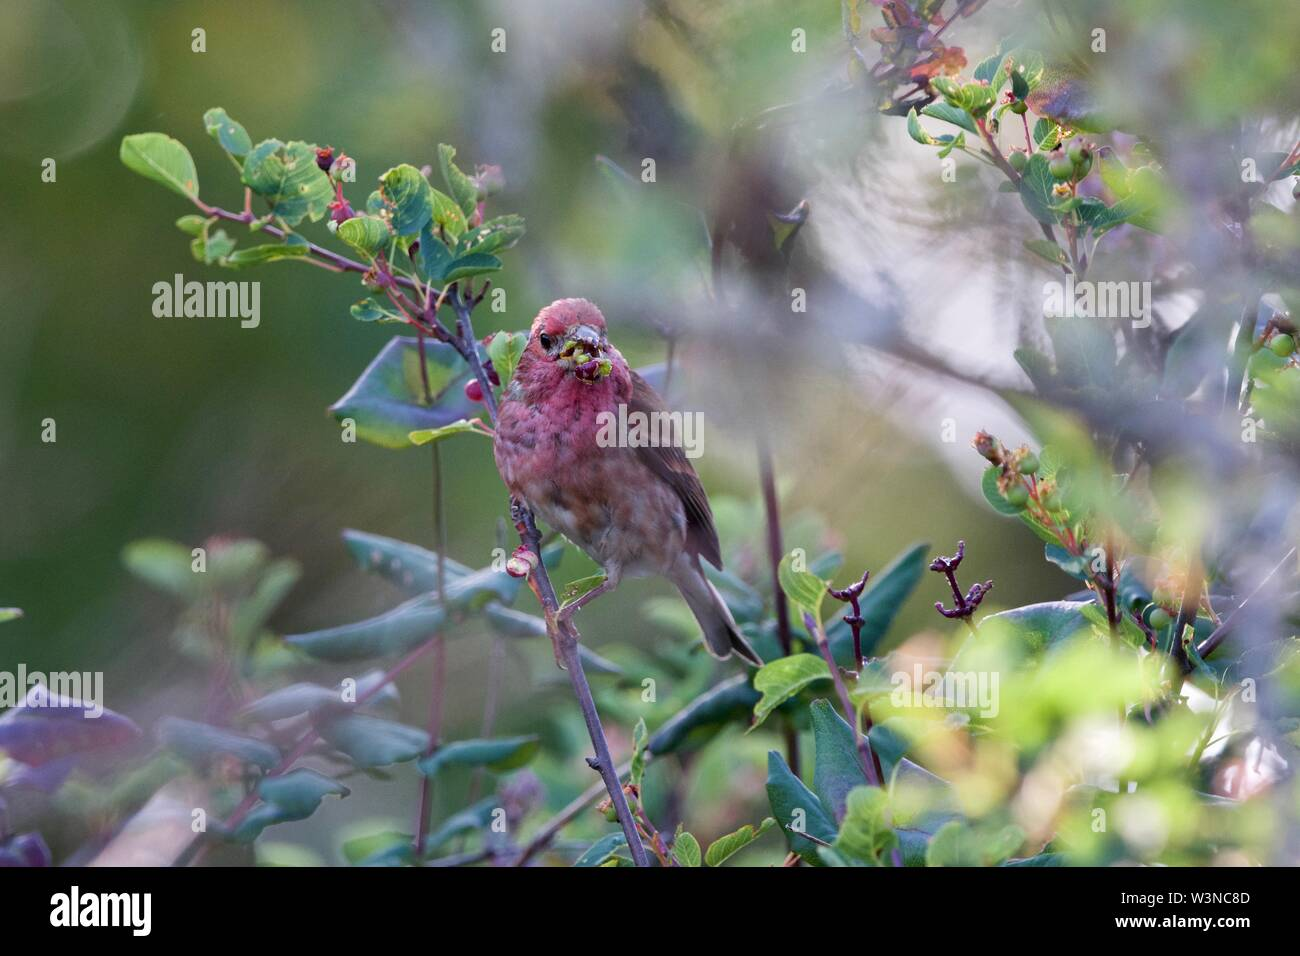 Purple finch feeds on small tree fruits in the wild, southern Vancouver Island, British Columbia - Stock Image